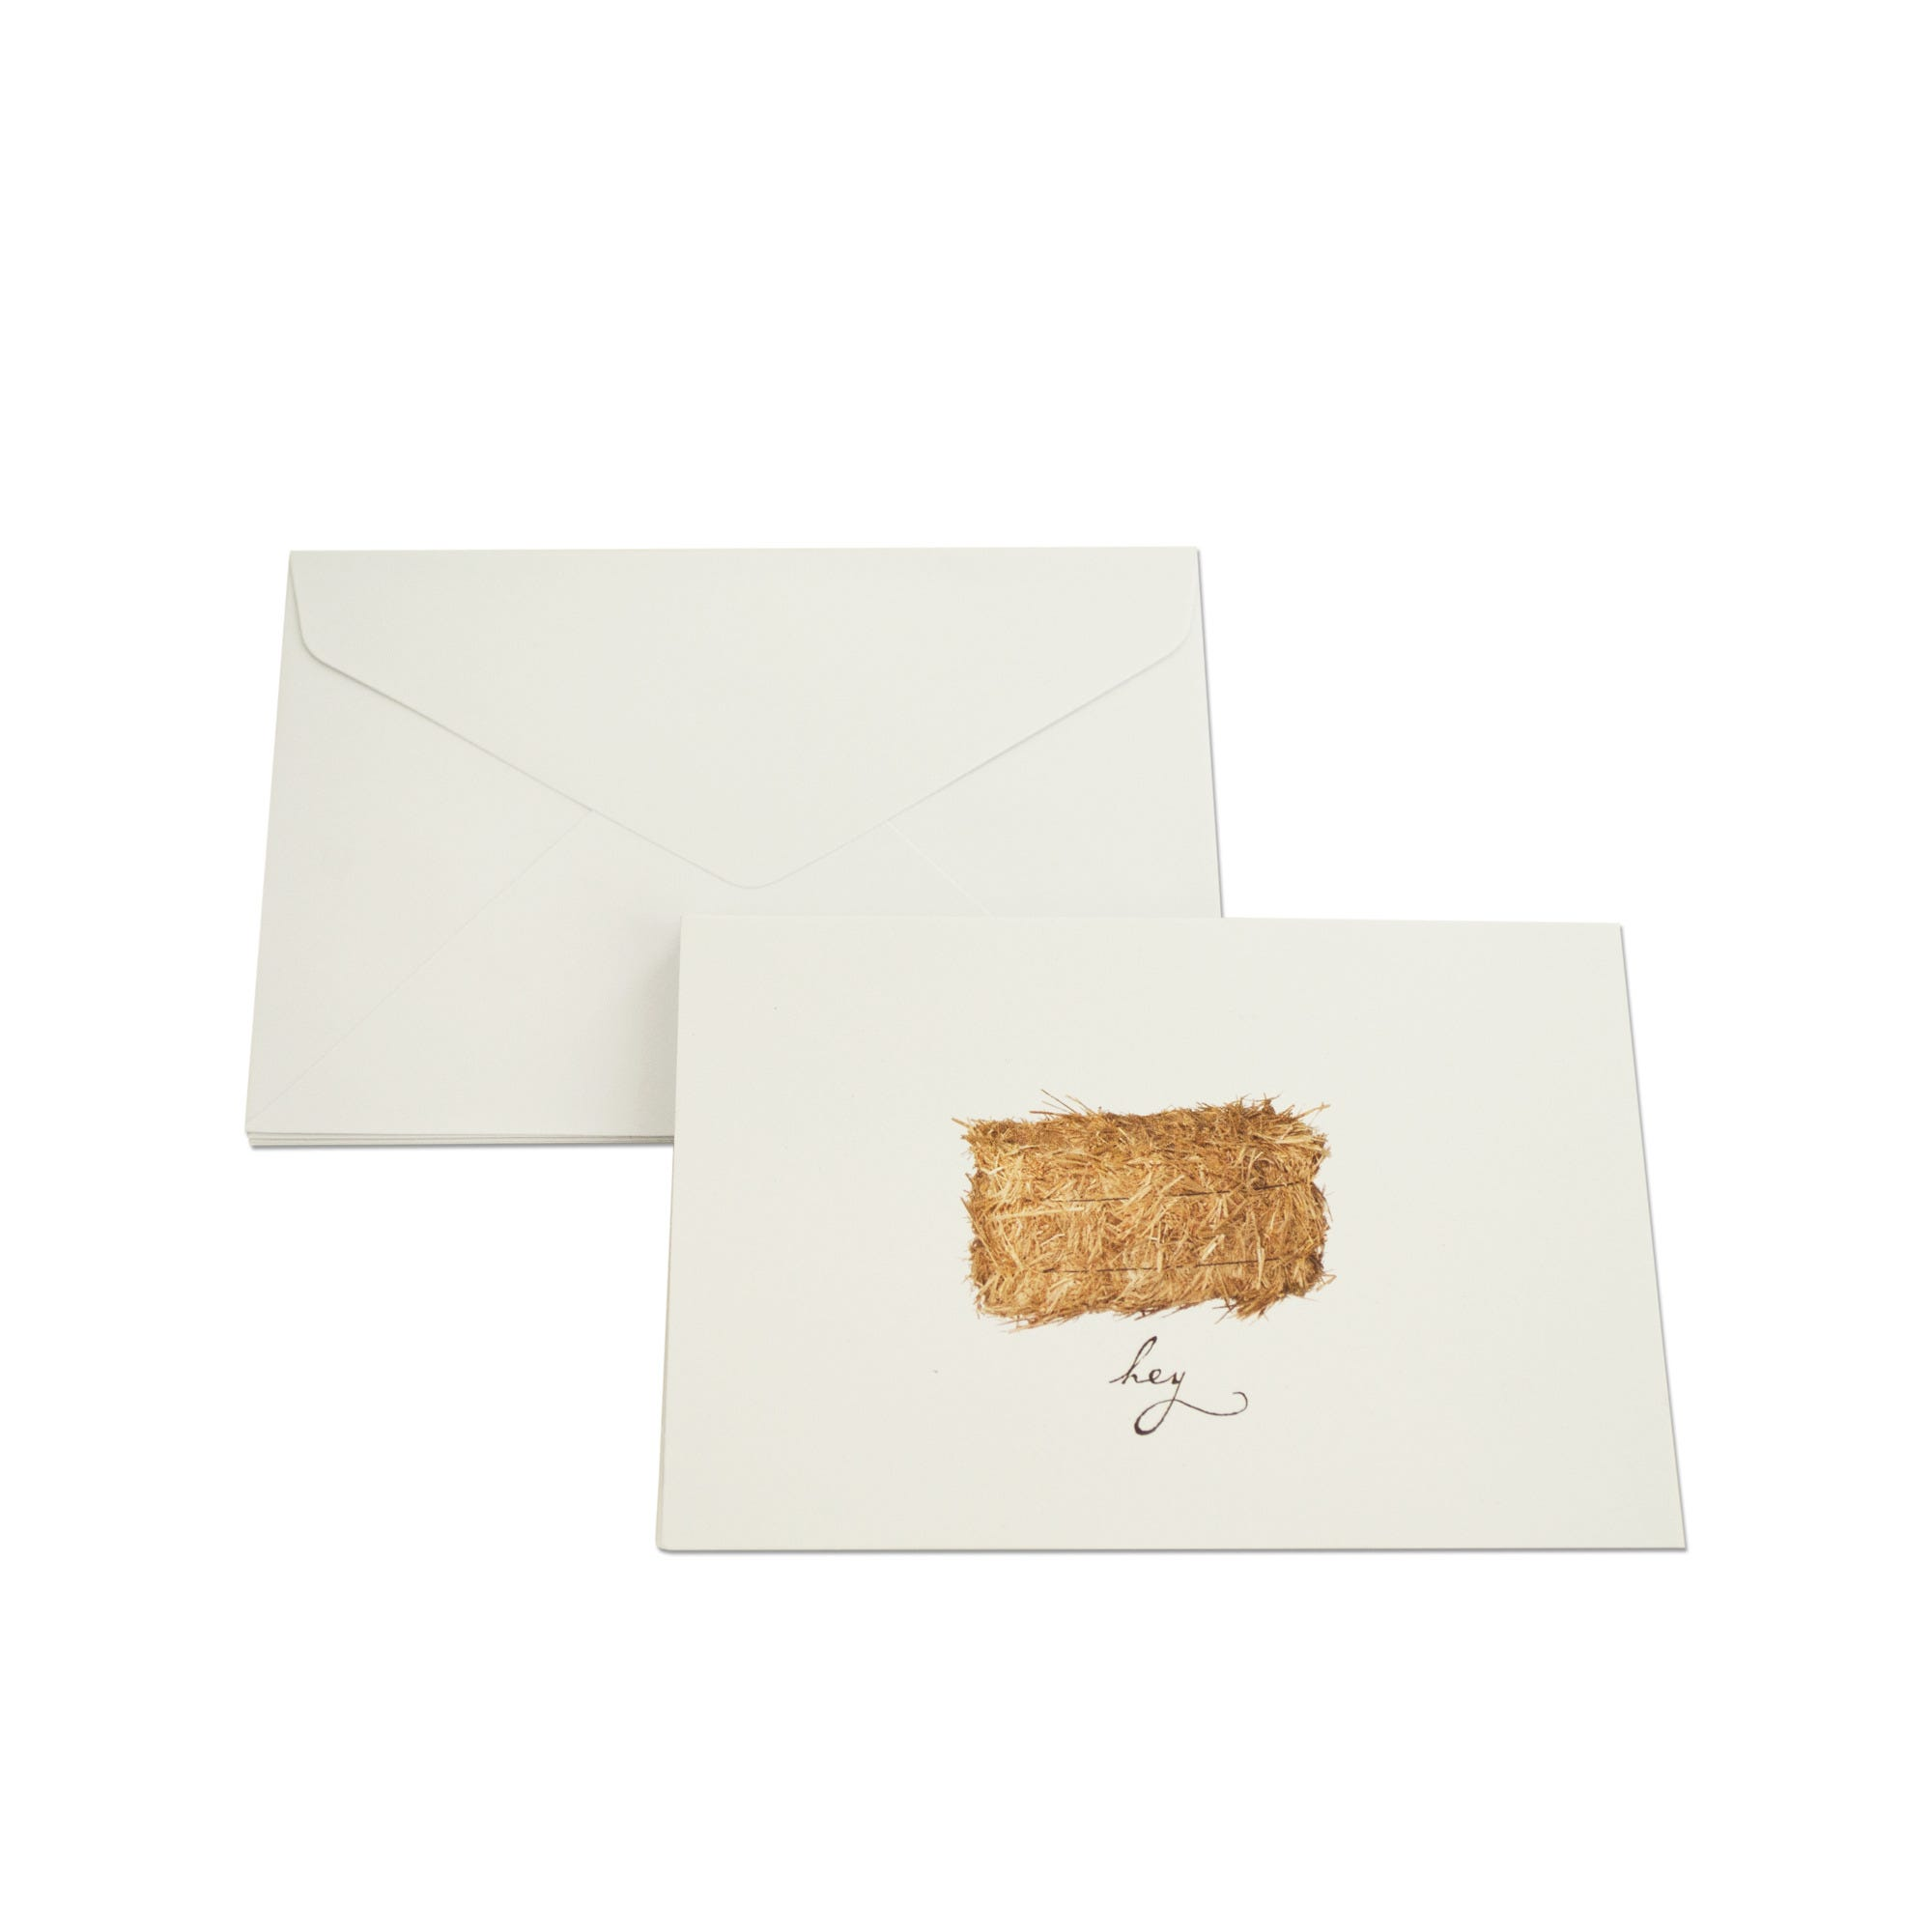 Hey Haystack Blank Note Cards & ENVELOPES Set- Qty 24